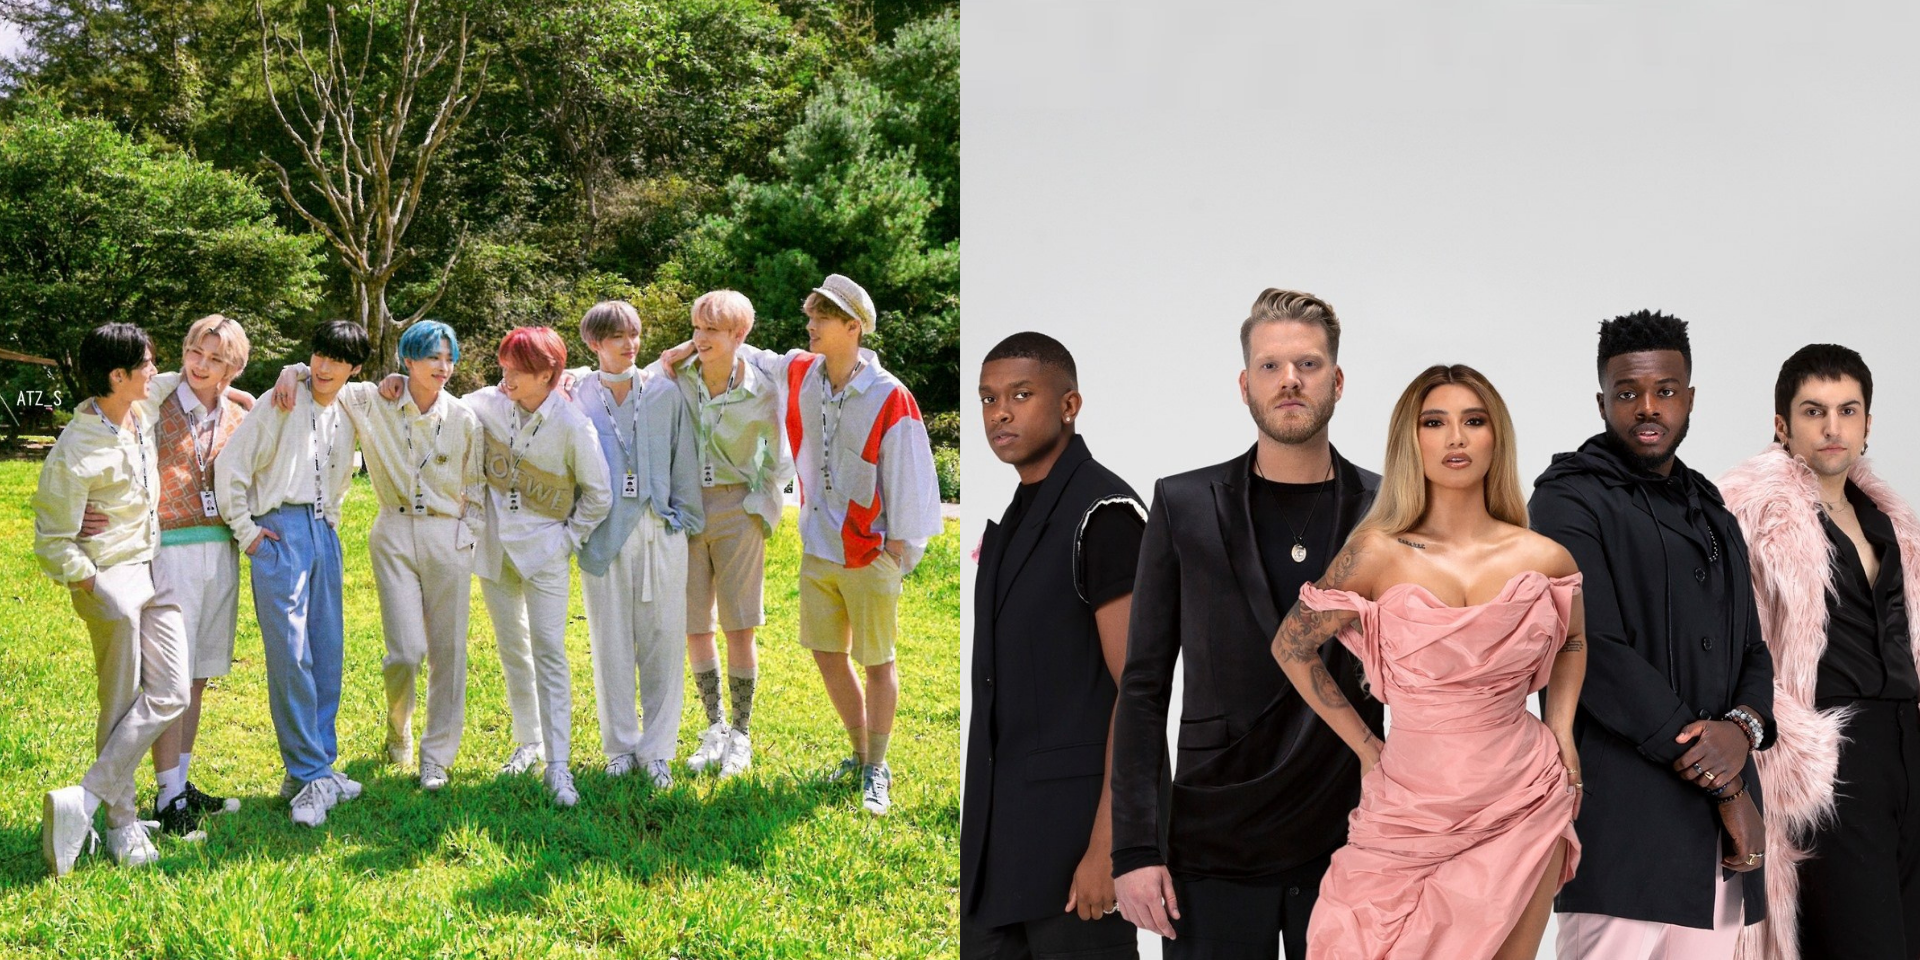 ATEEZ and Pentatonix unveil collaborative single 'A Little Space' with music video teaser - watch